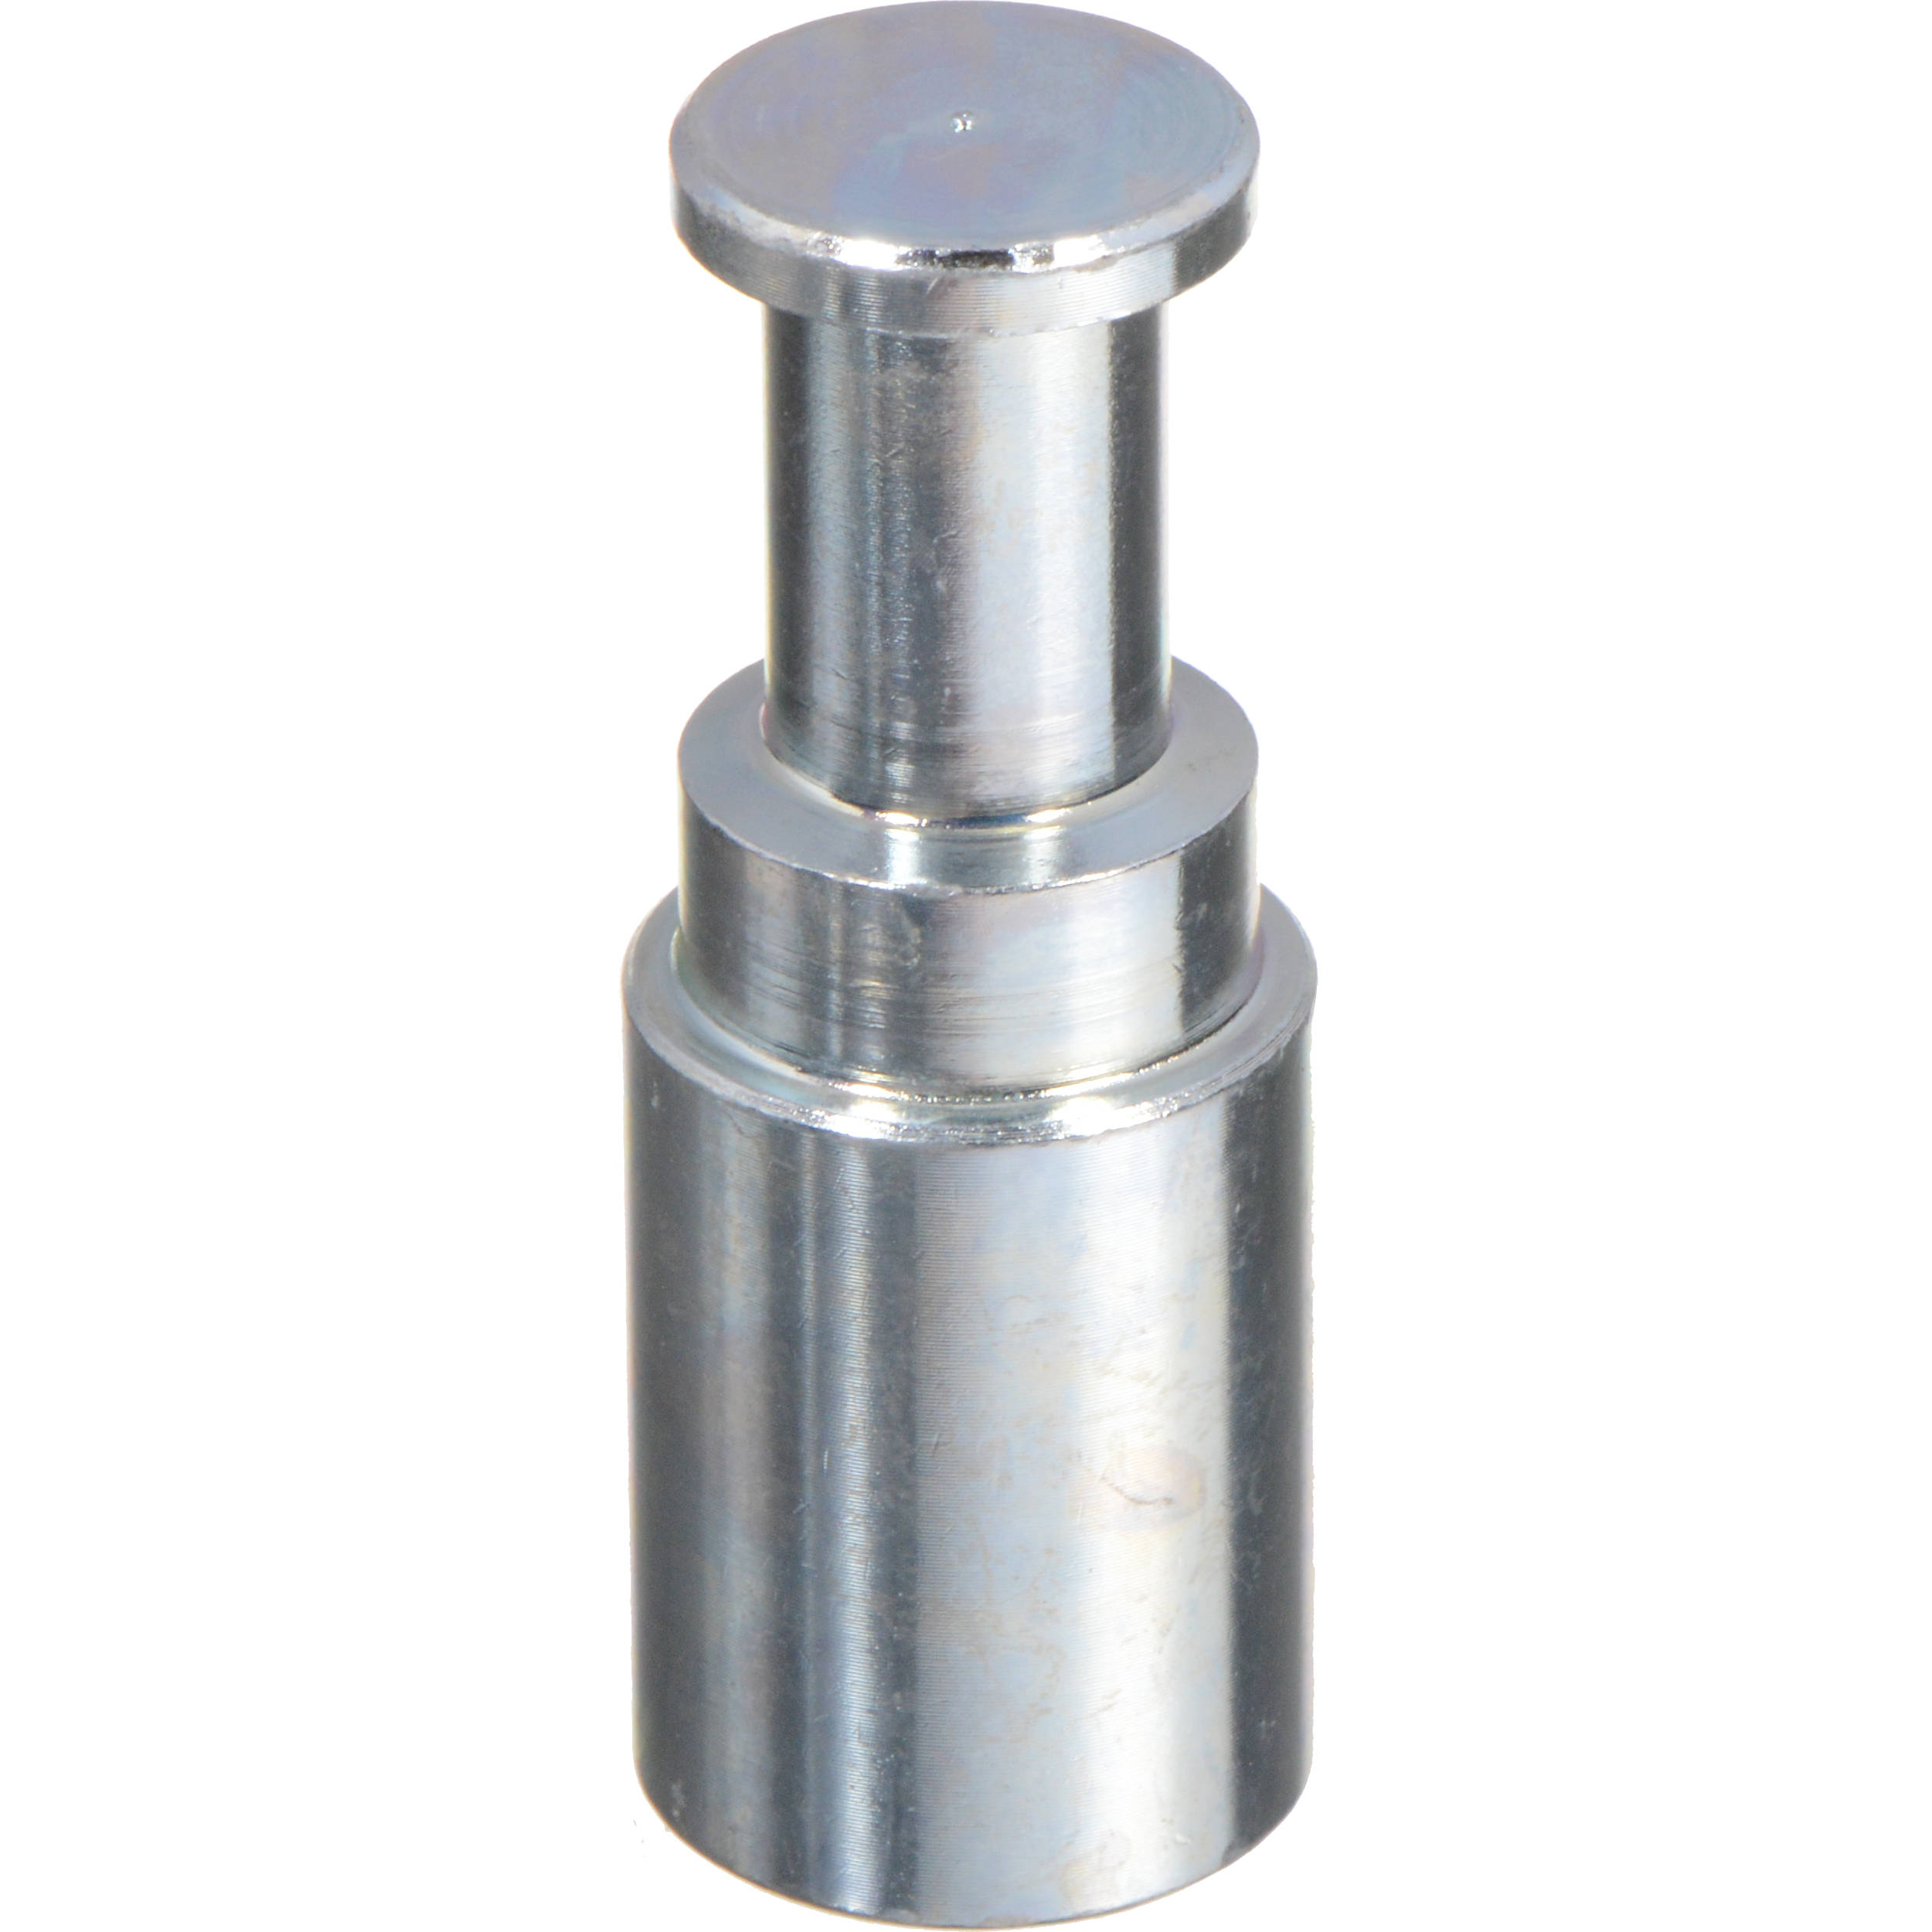 """Manfrotto 186 Female Threaded 3/8"""" to Male 5/8"""" Stud Adapter"""